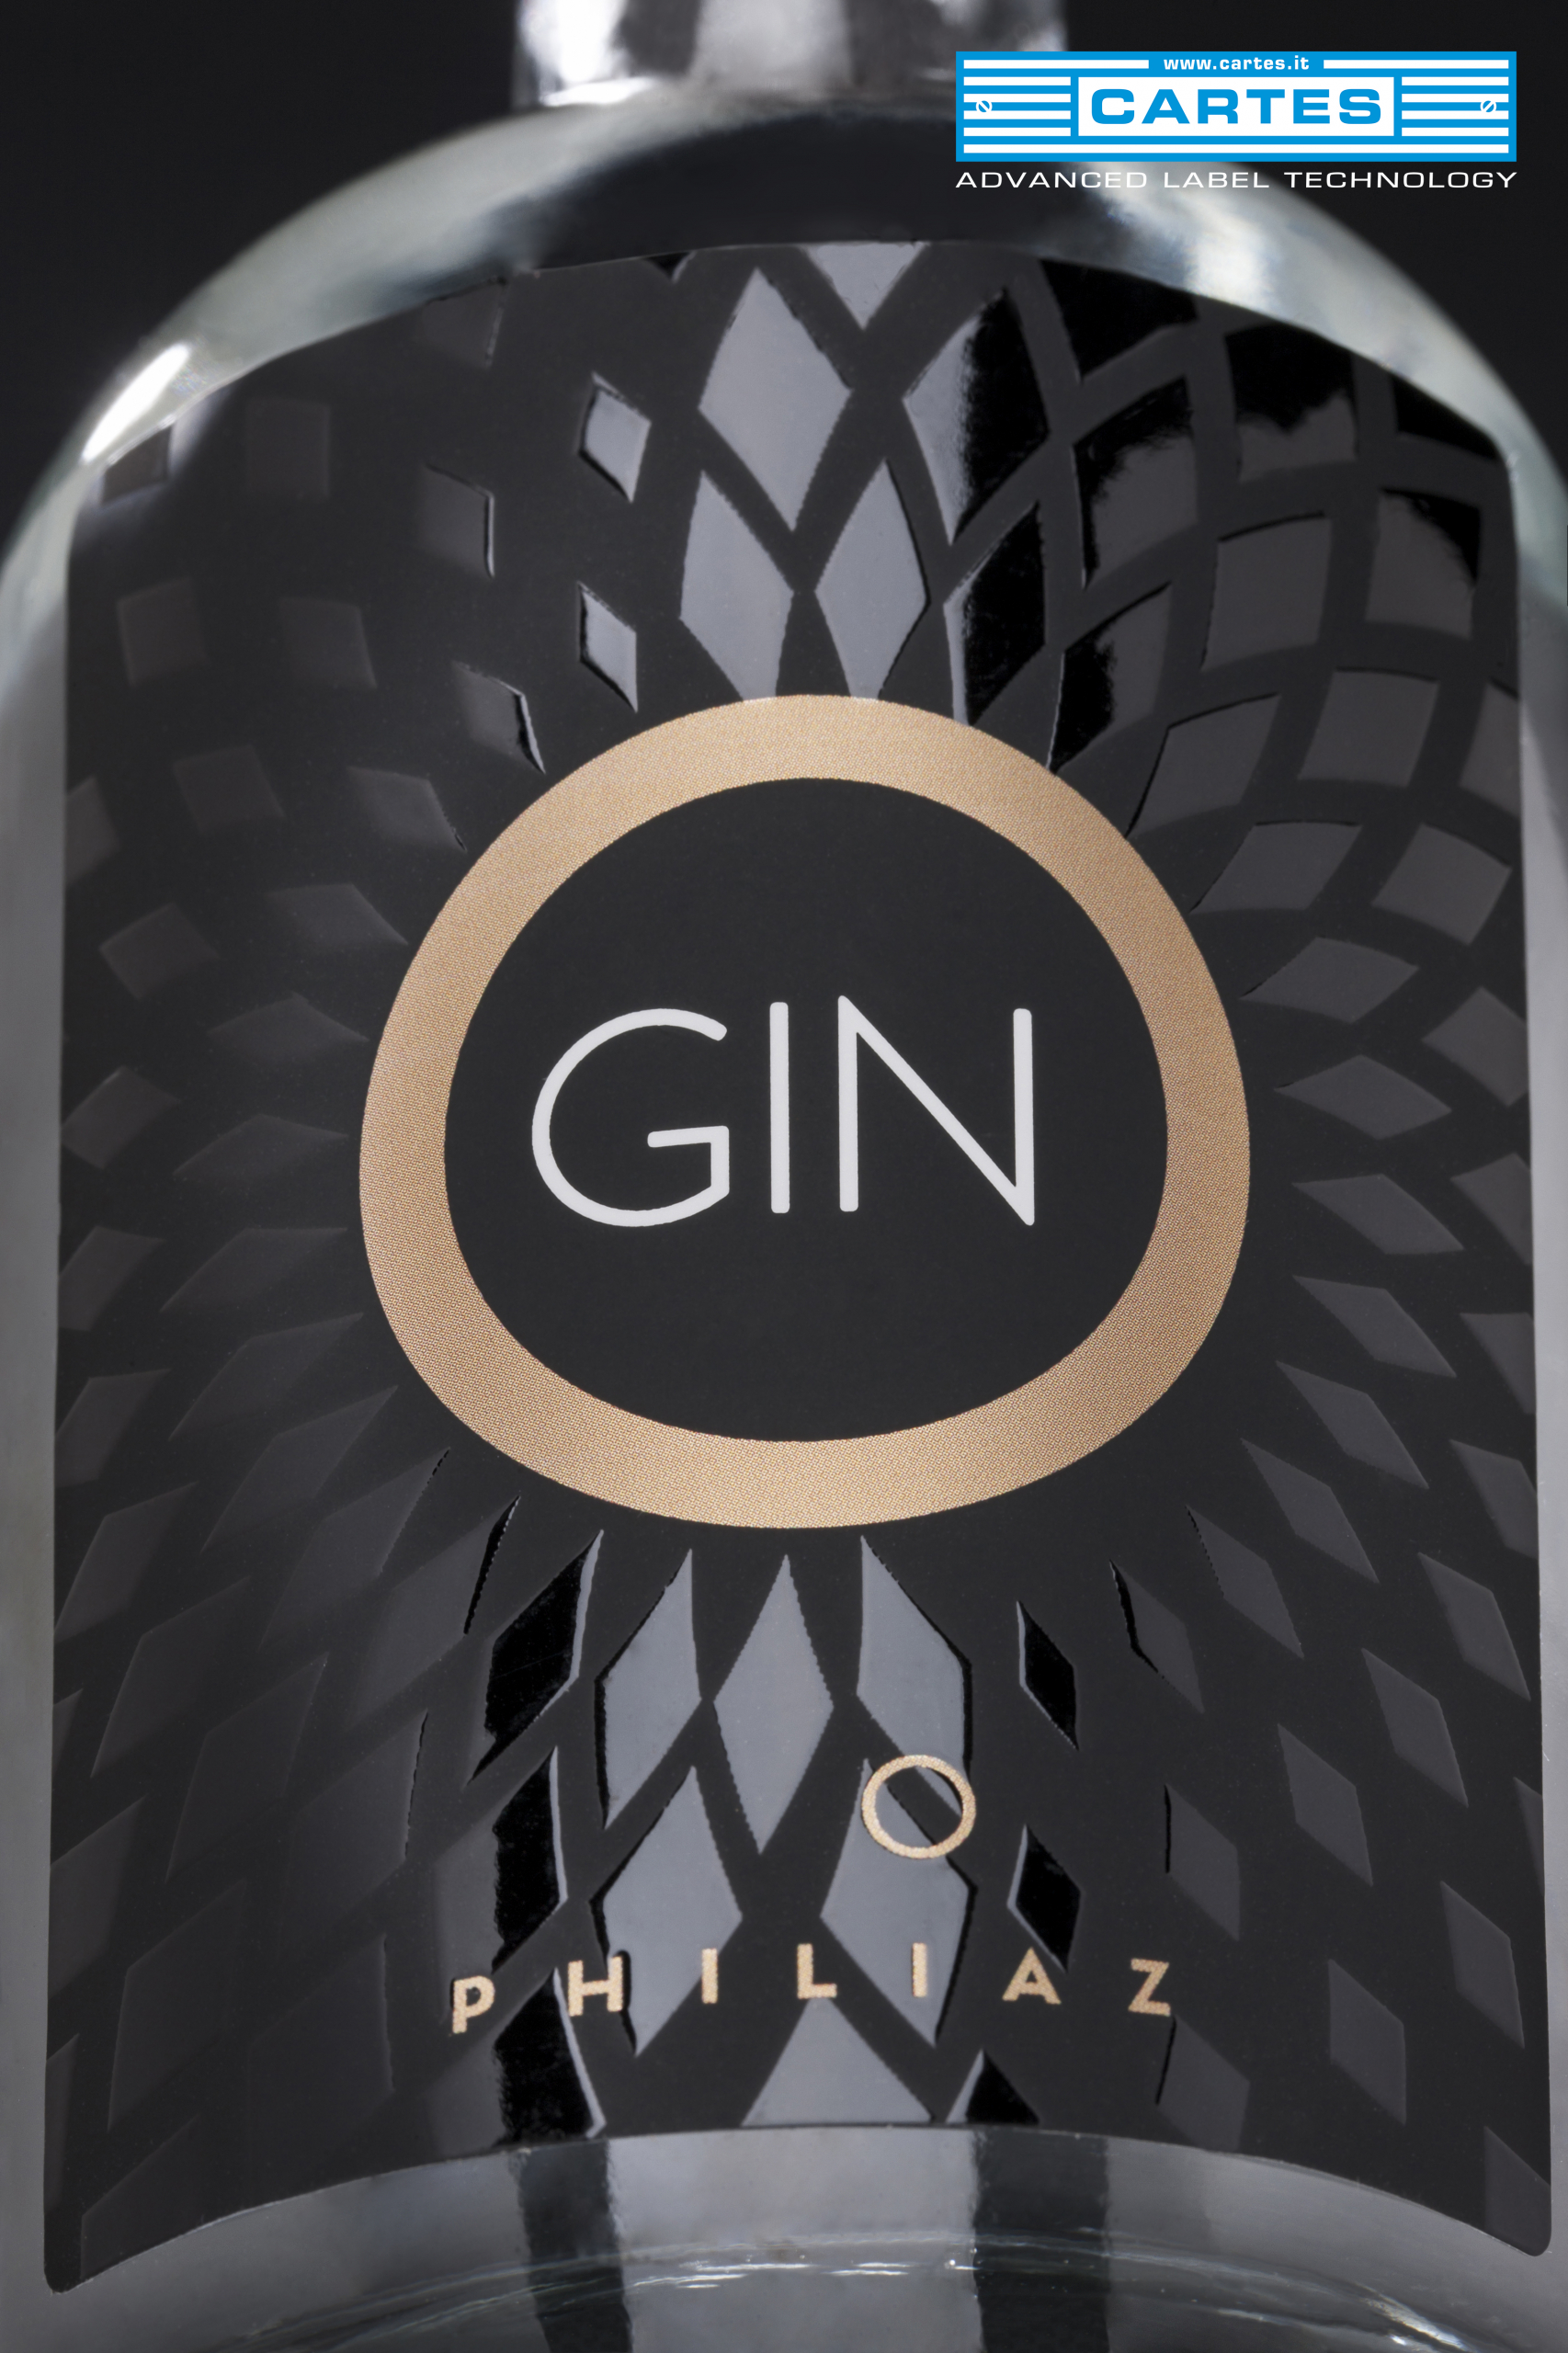 Gin-DS1011